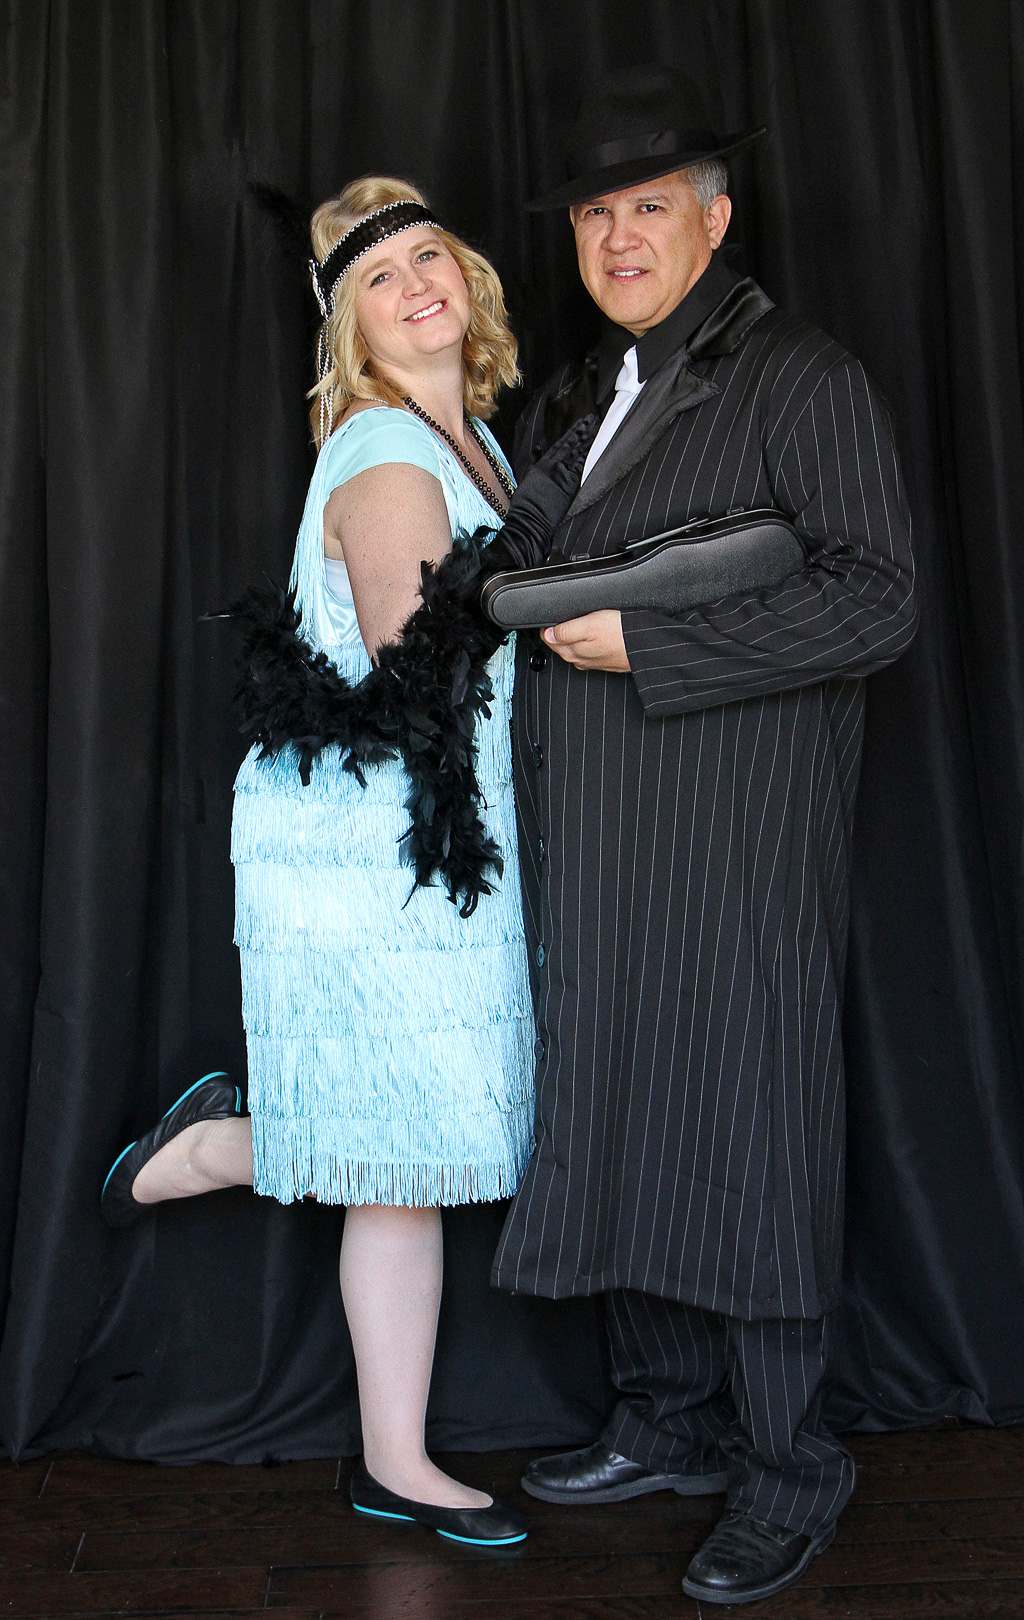 1920s Costume Party - Couples Costumes - Flappers and Gangsters